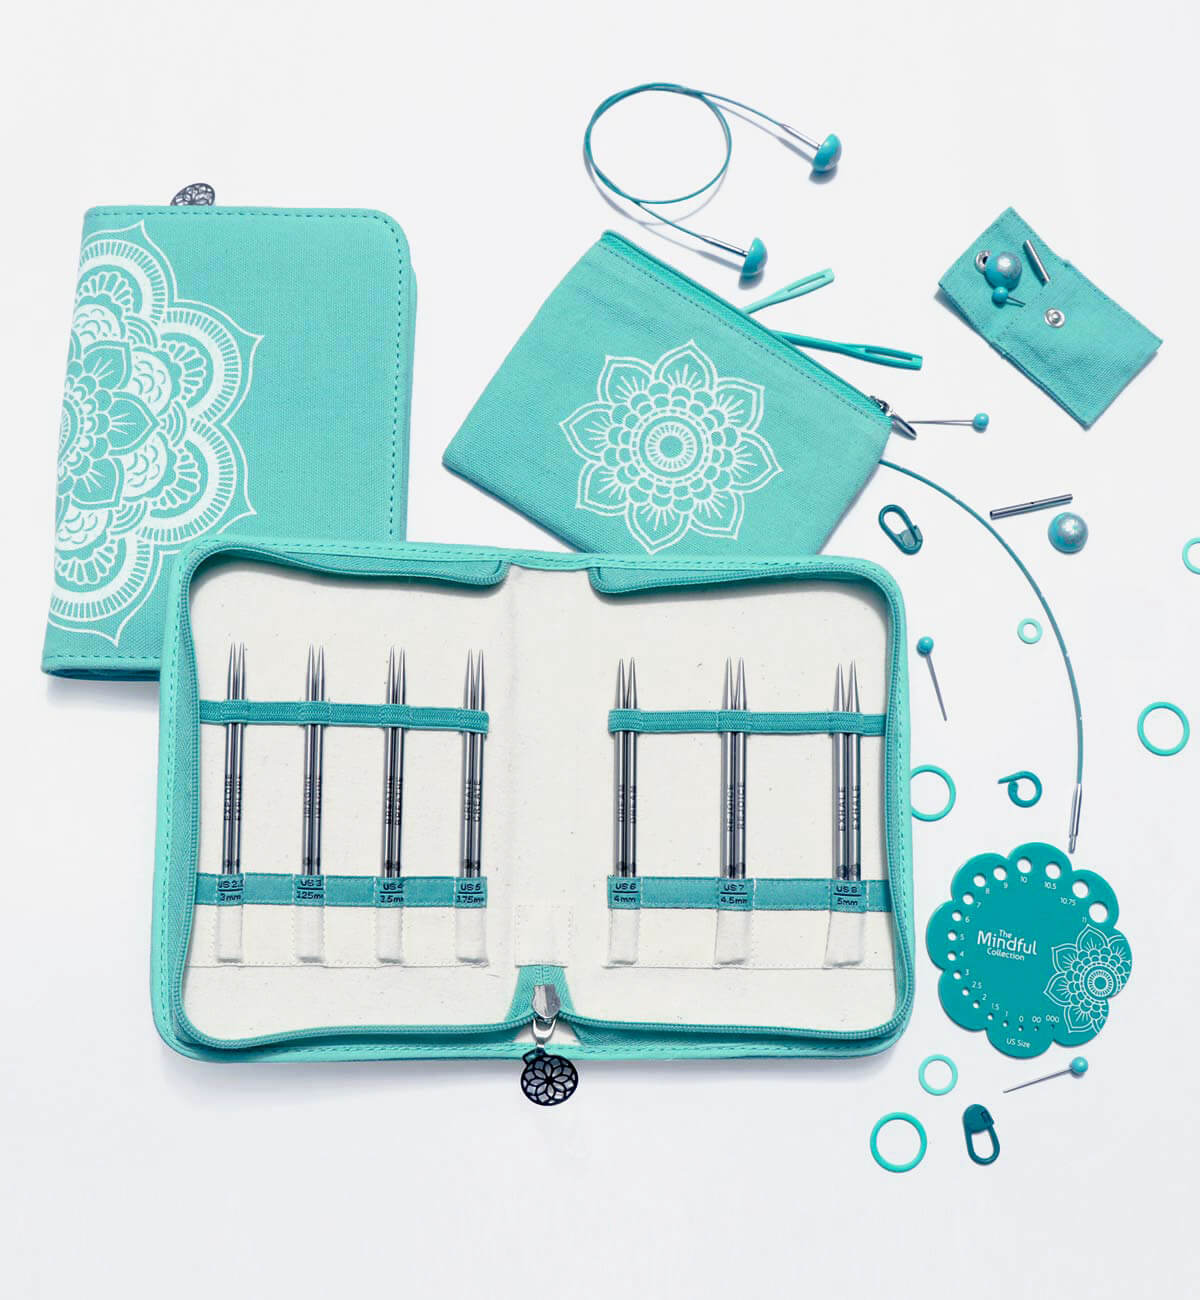 The Mindful Collection Needle Set, Believe Set